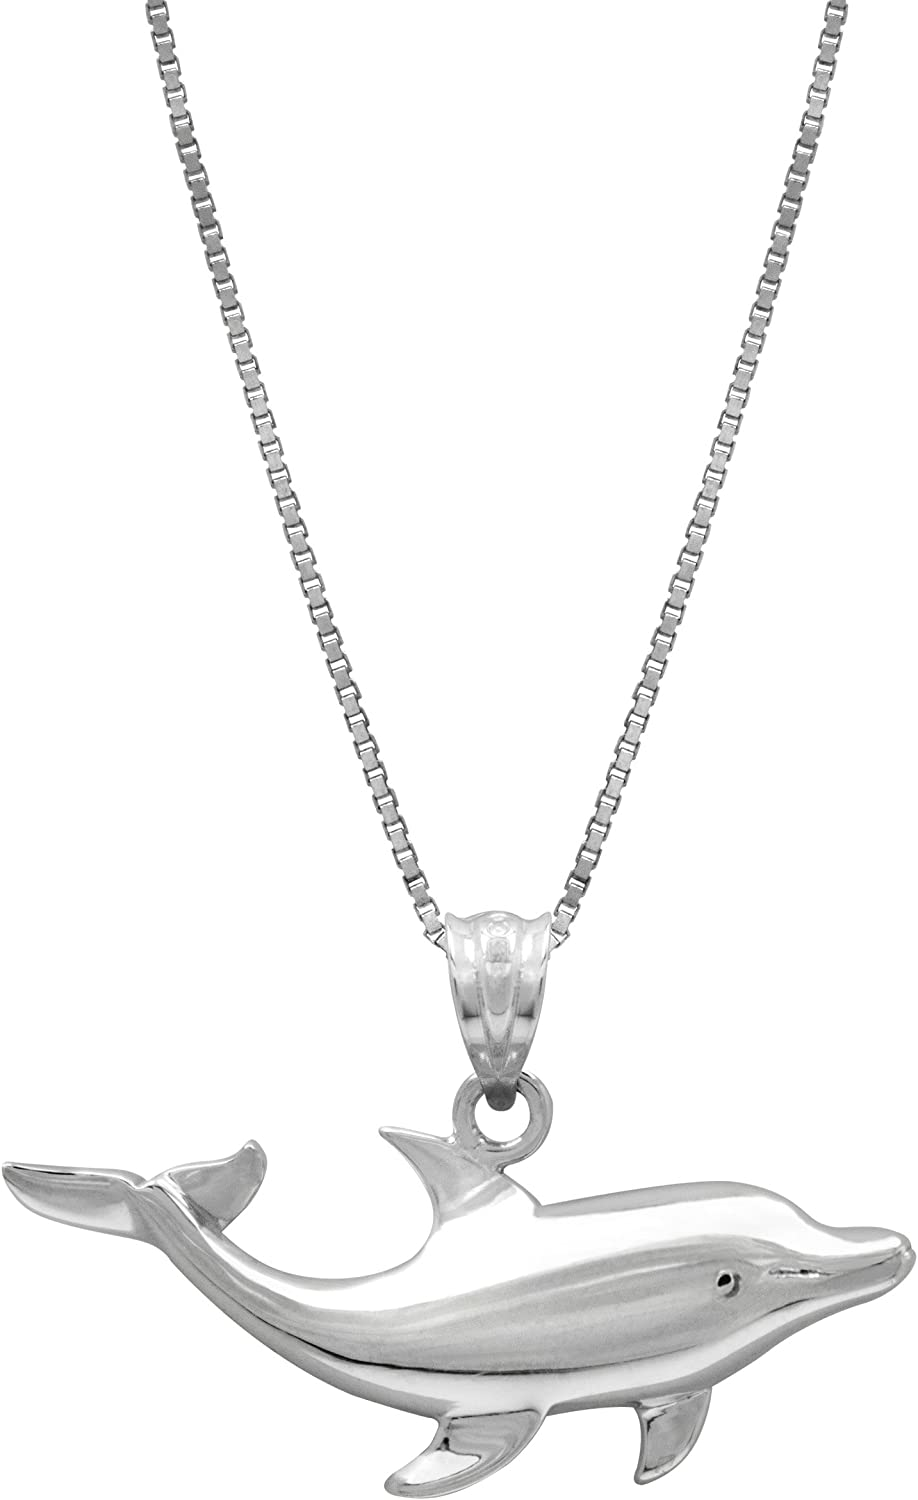 De Buman Two-tone CZ /& Crystal Dolphin Necklace 925 Silver Chain 18 INCHES